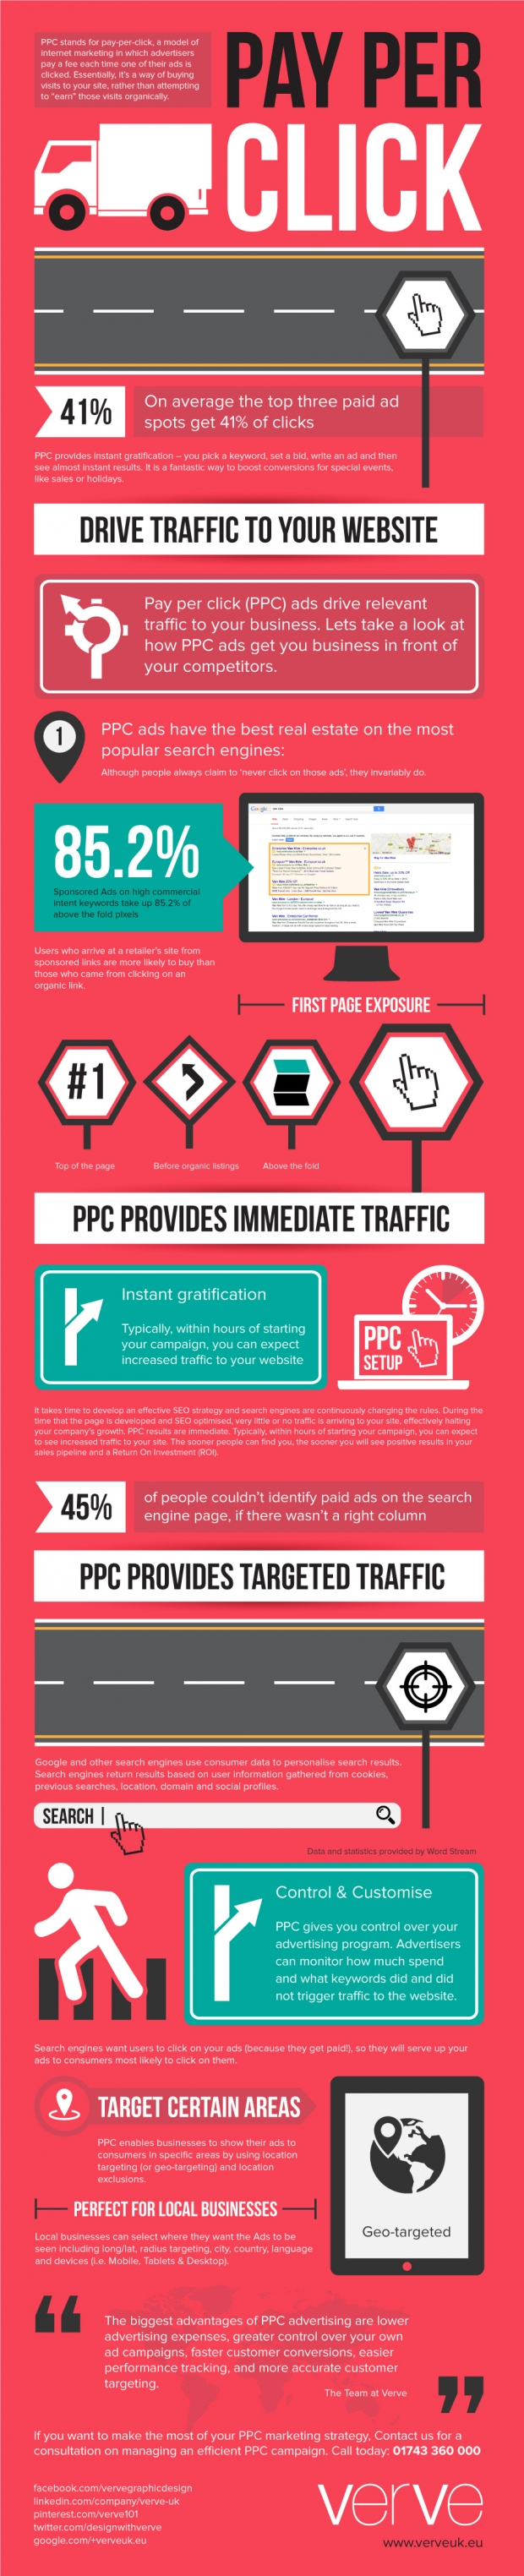 Search Engine Marketing: What Is Pay-Per-Click (PPC) Advertising? [Infographic]